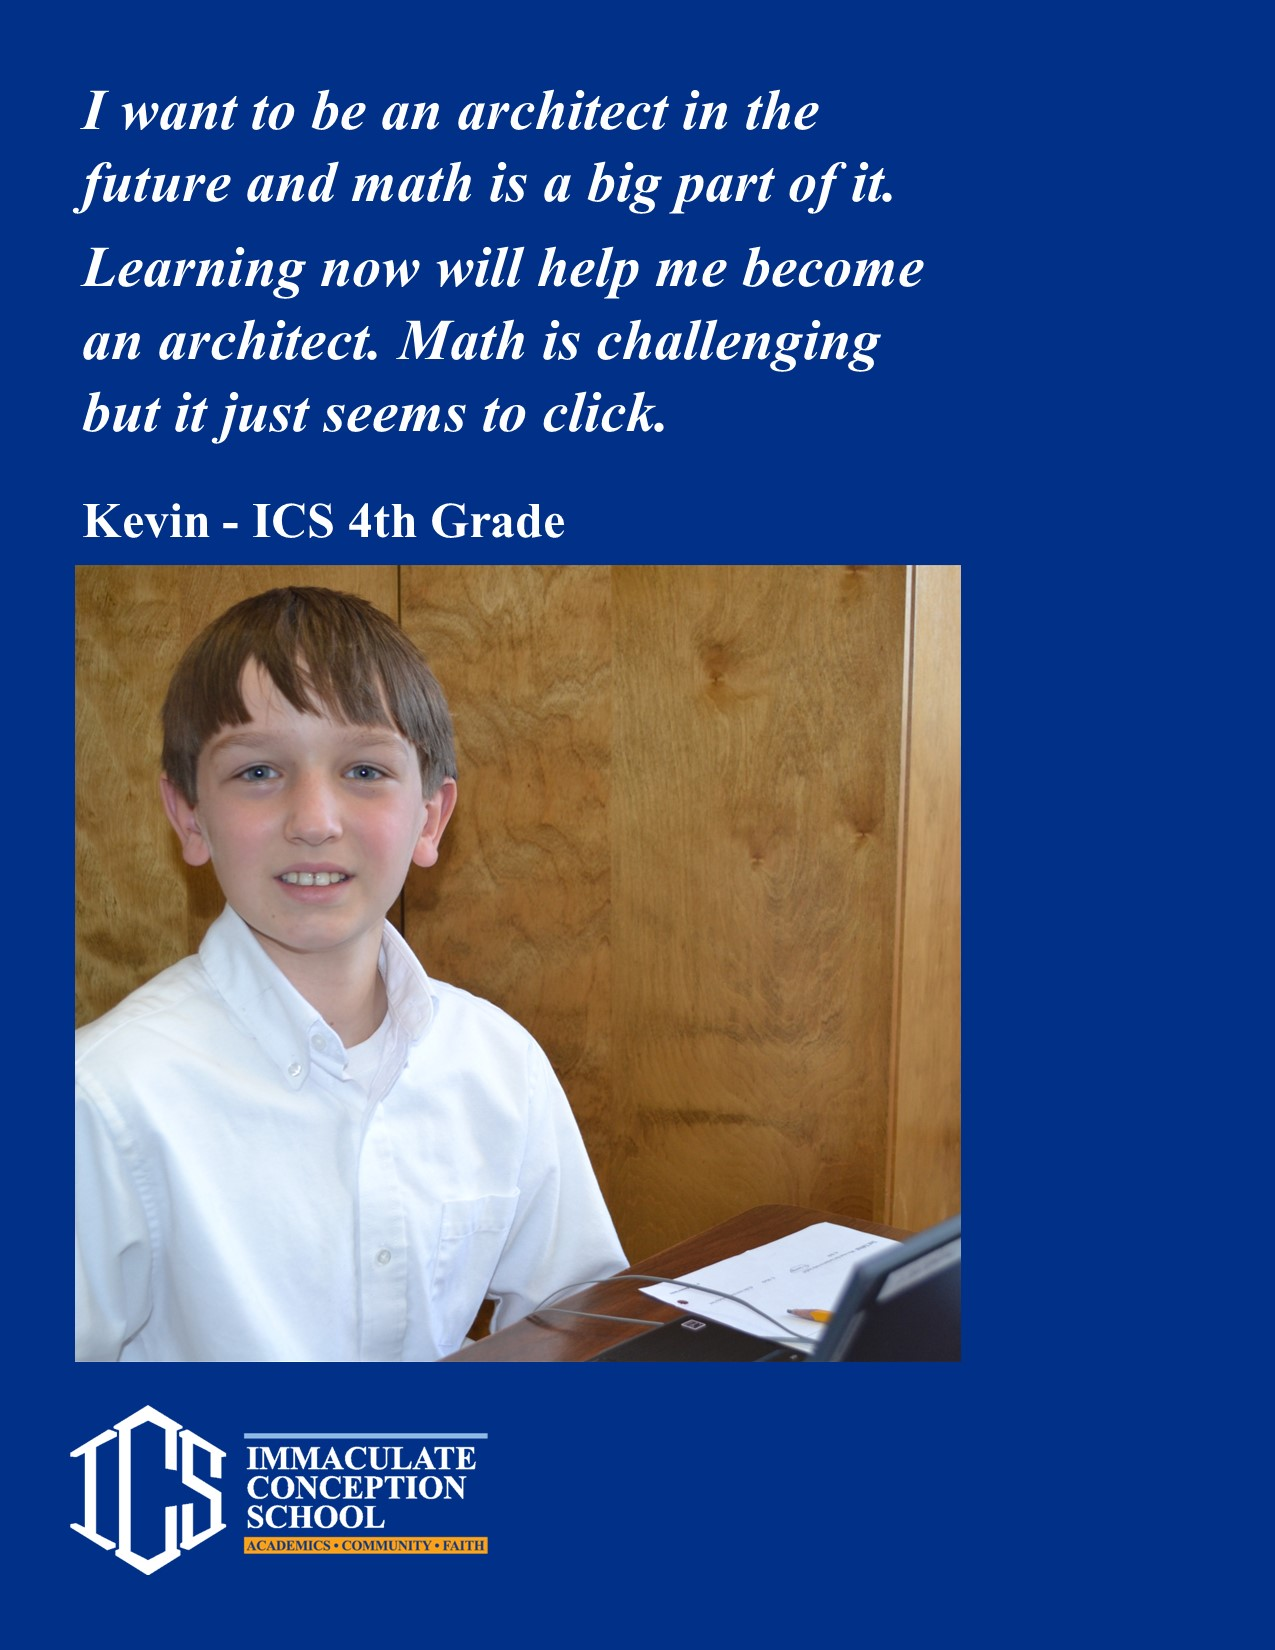 Get to know an ICS student